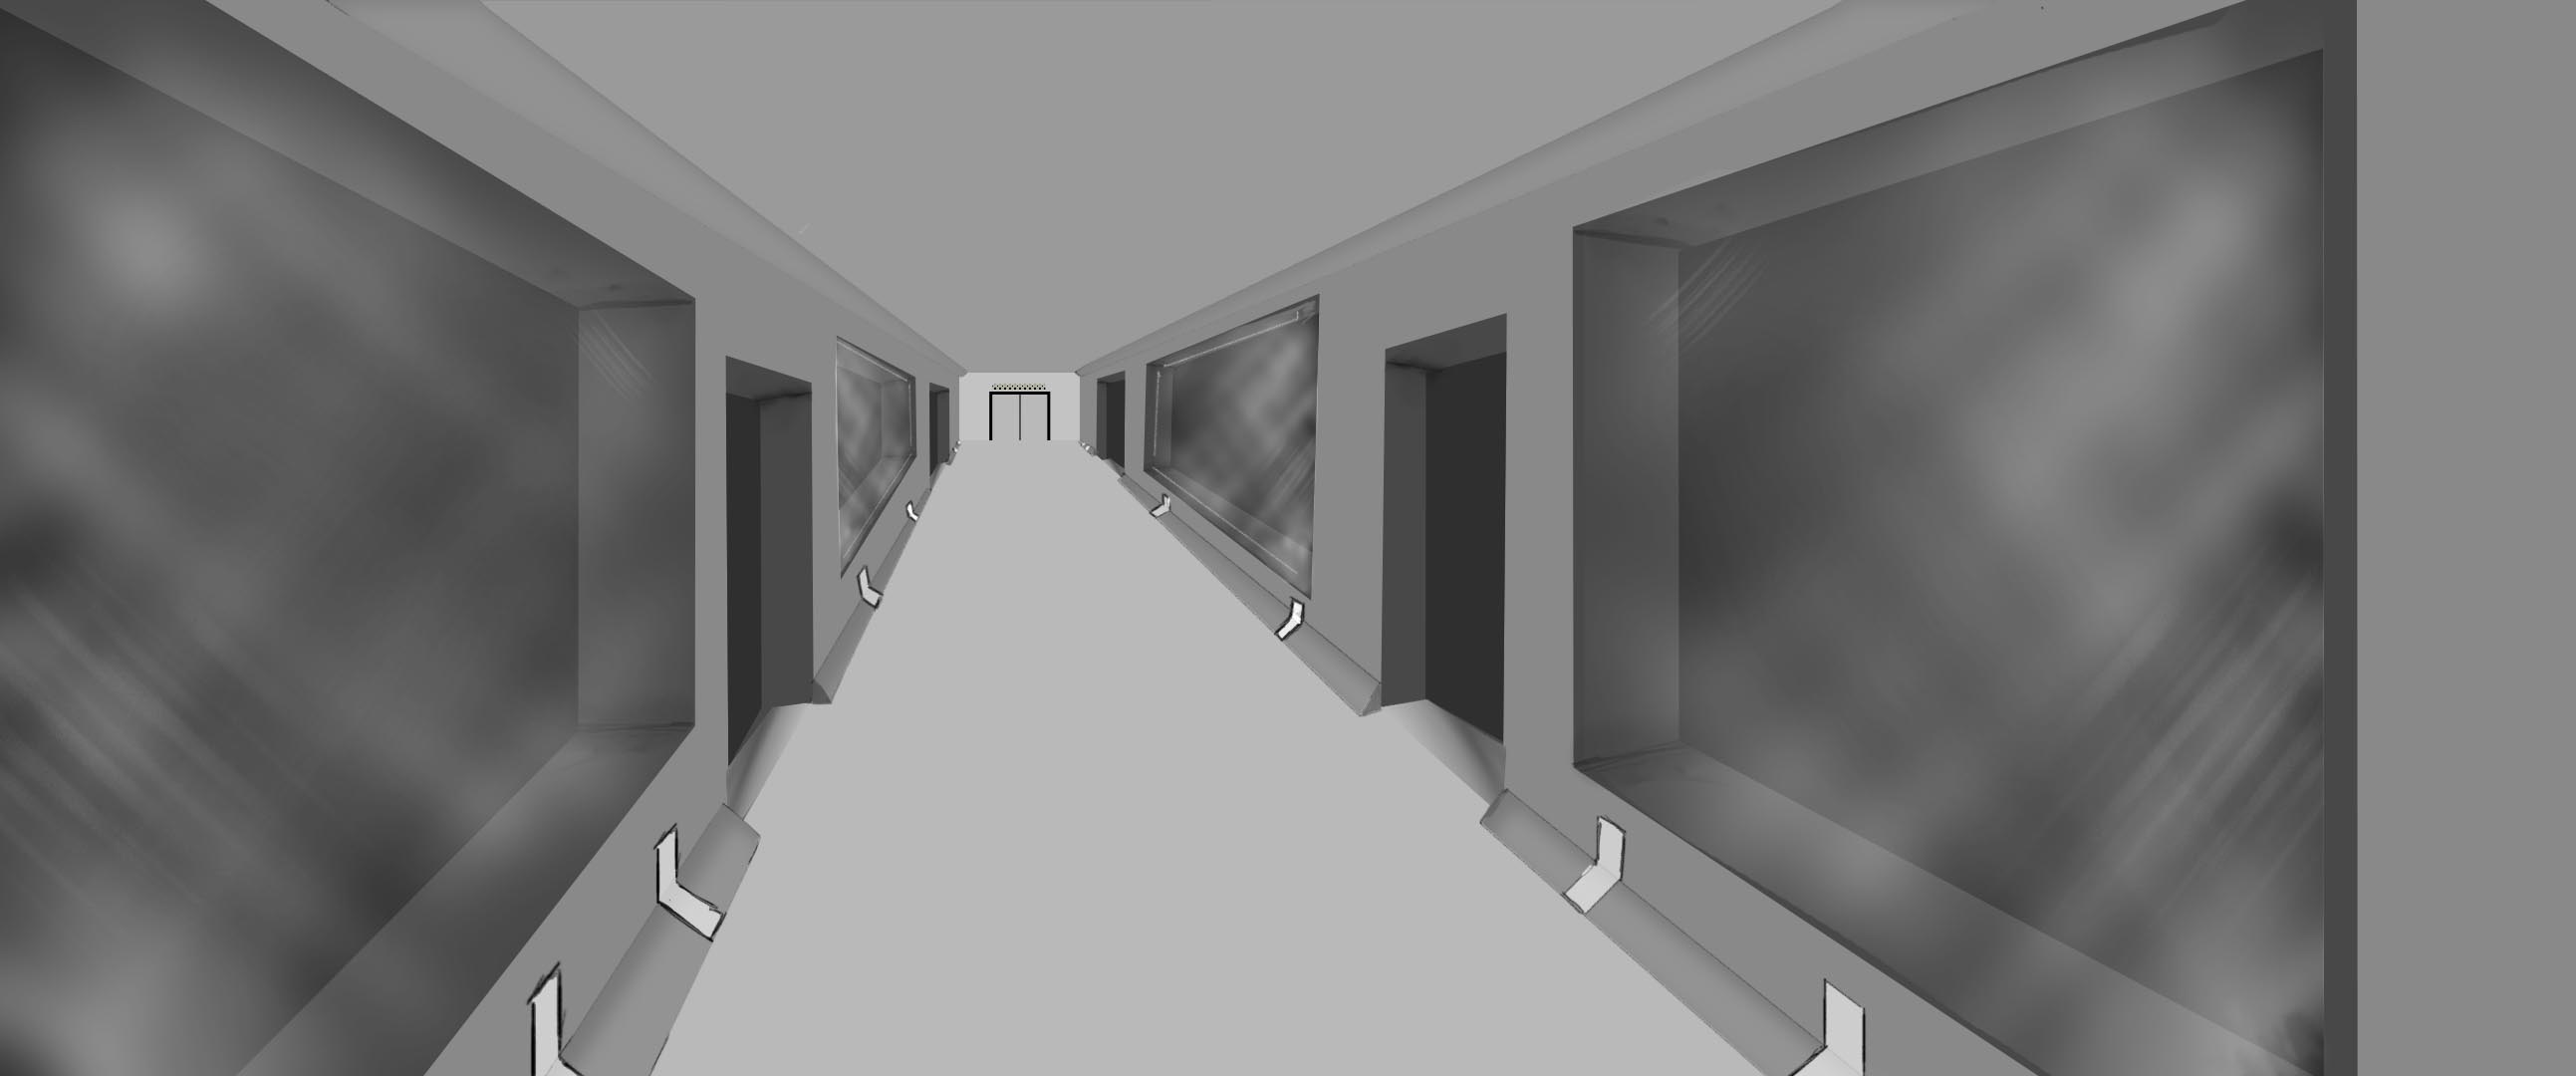 Research Hallway Concept